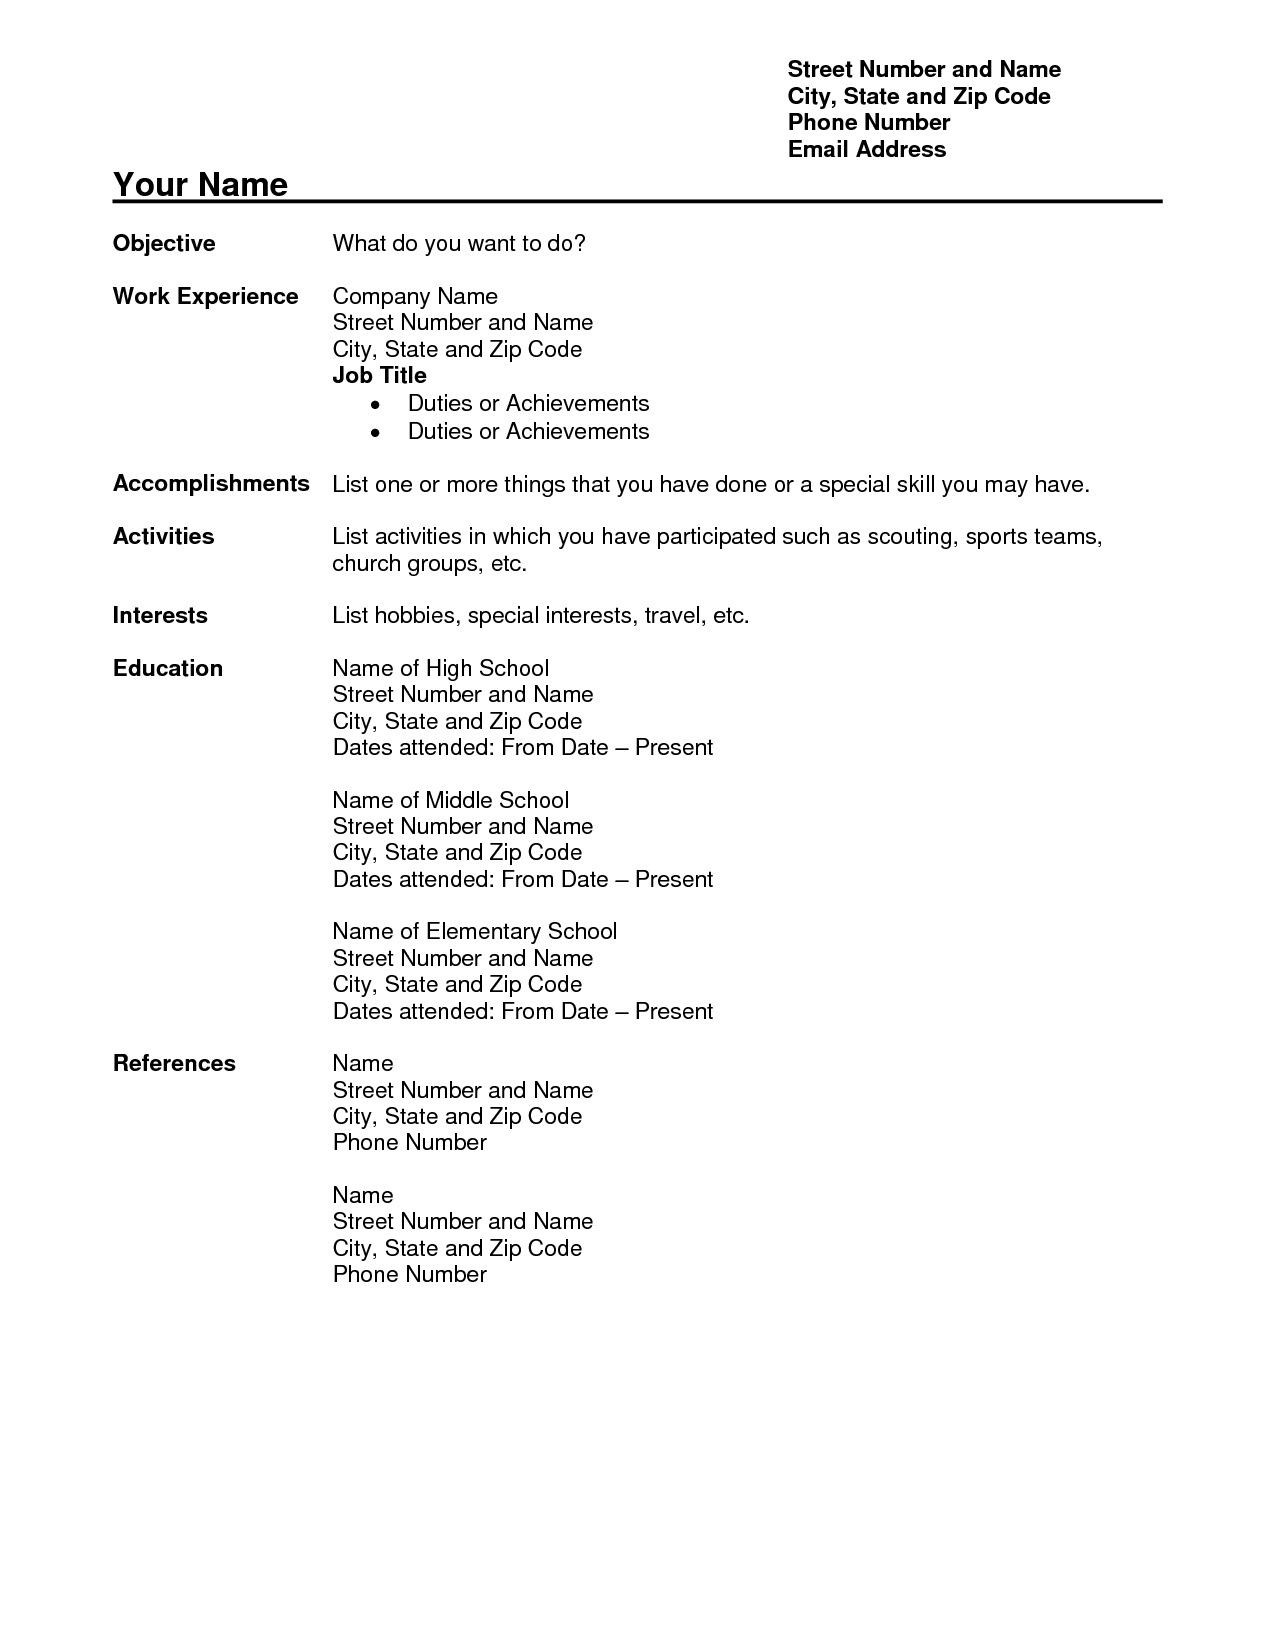 Free Microsoft Word Resume Templates Free Teacher Resume Templates Download Free Teacher Resume